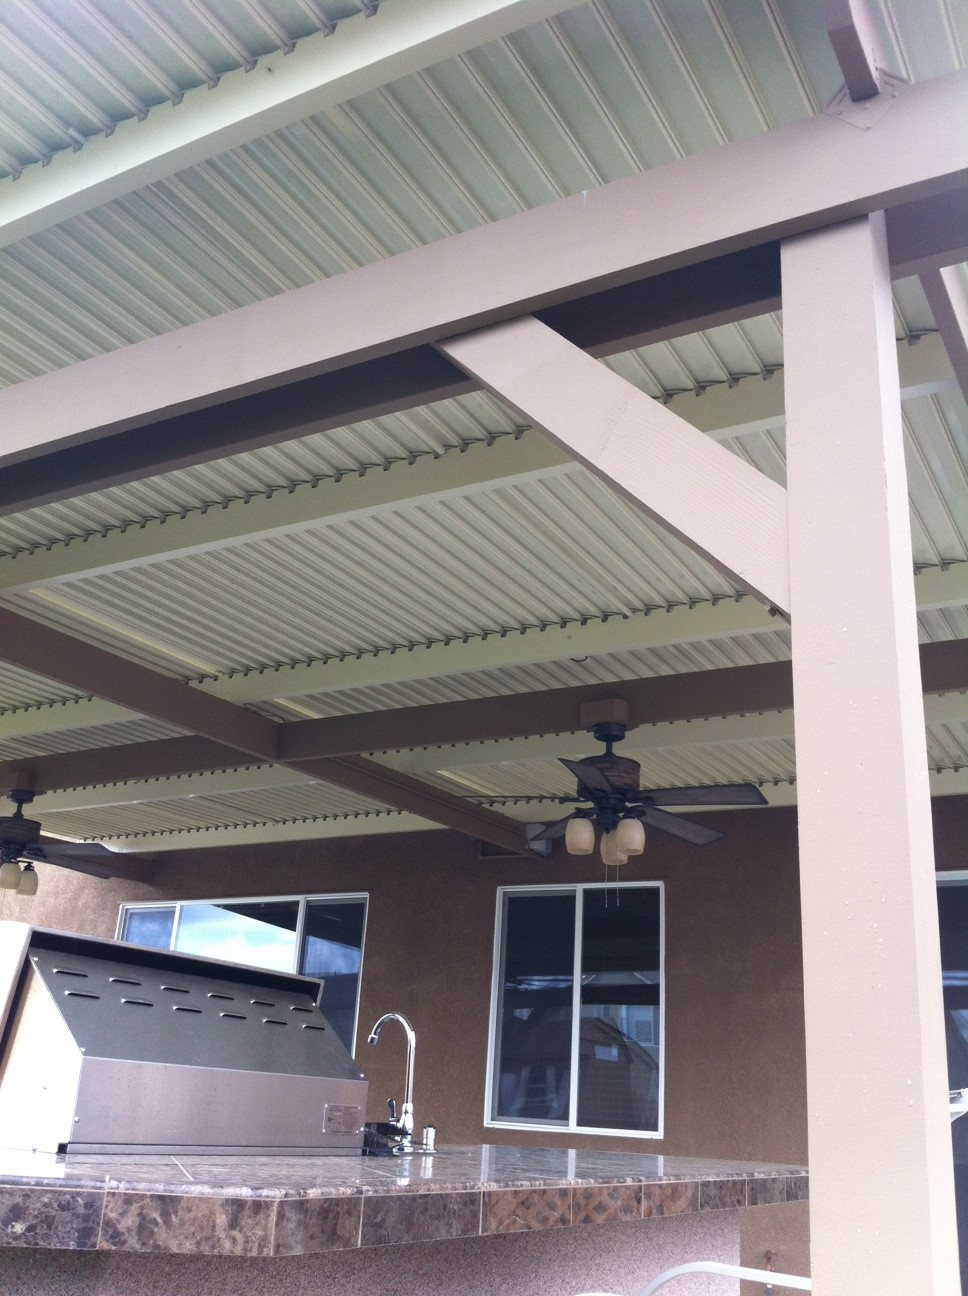 5.  Solara patio cover in Manteca